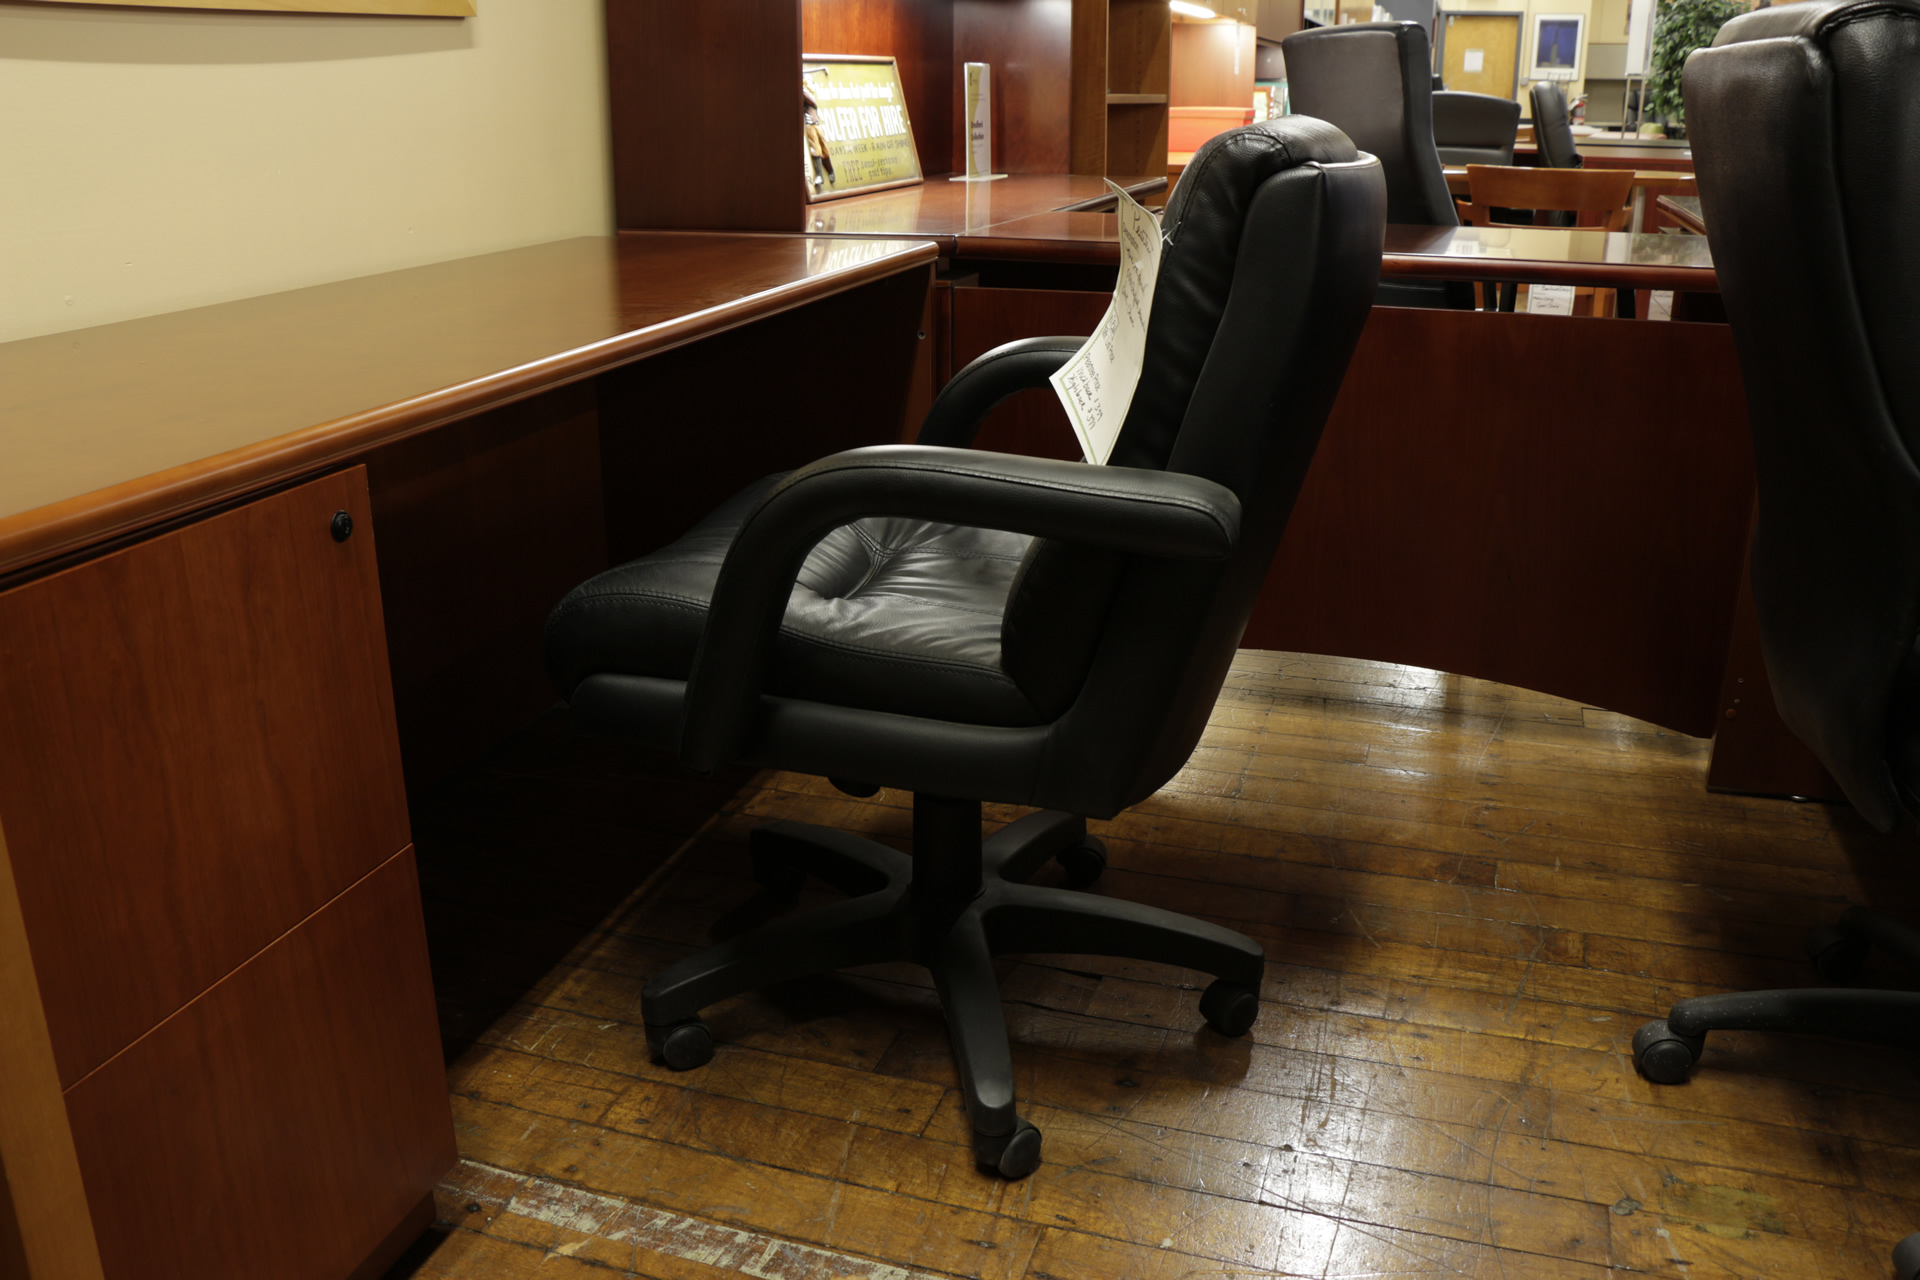 peartreeofficefurniture_peartreeofficefurniture_mg_2974.jpg